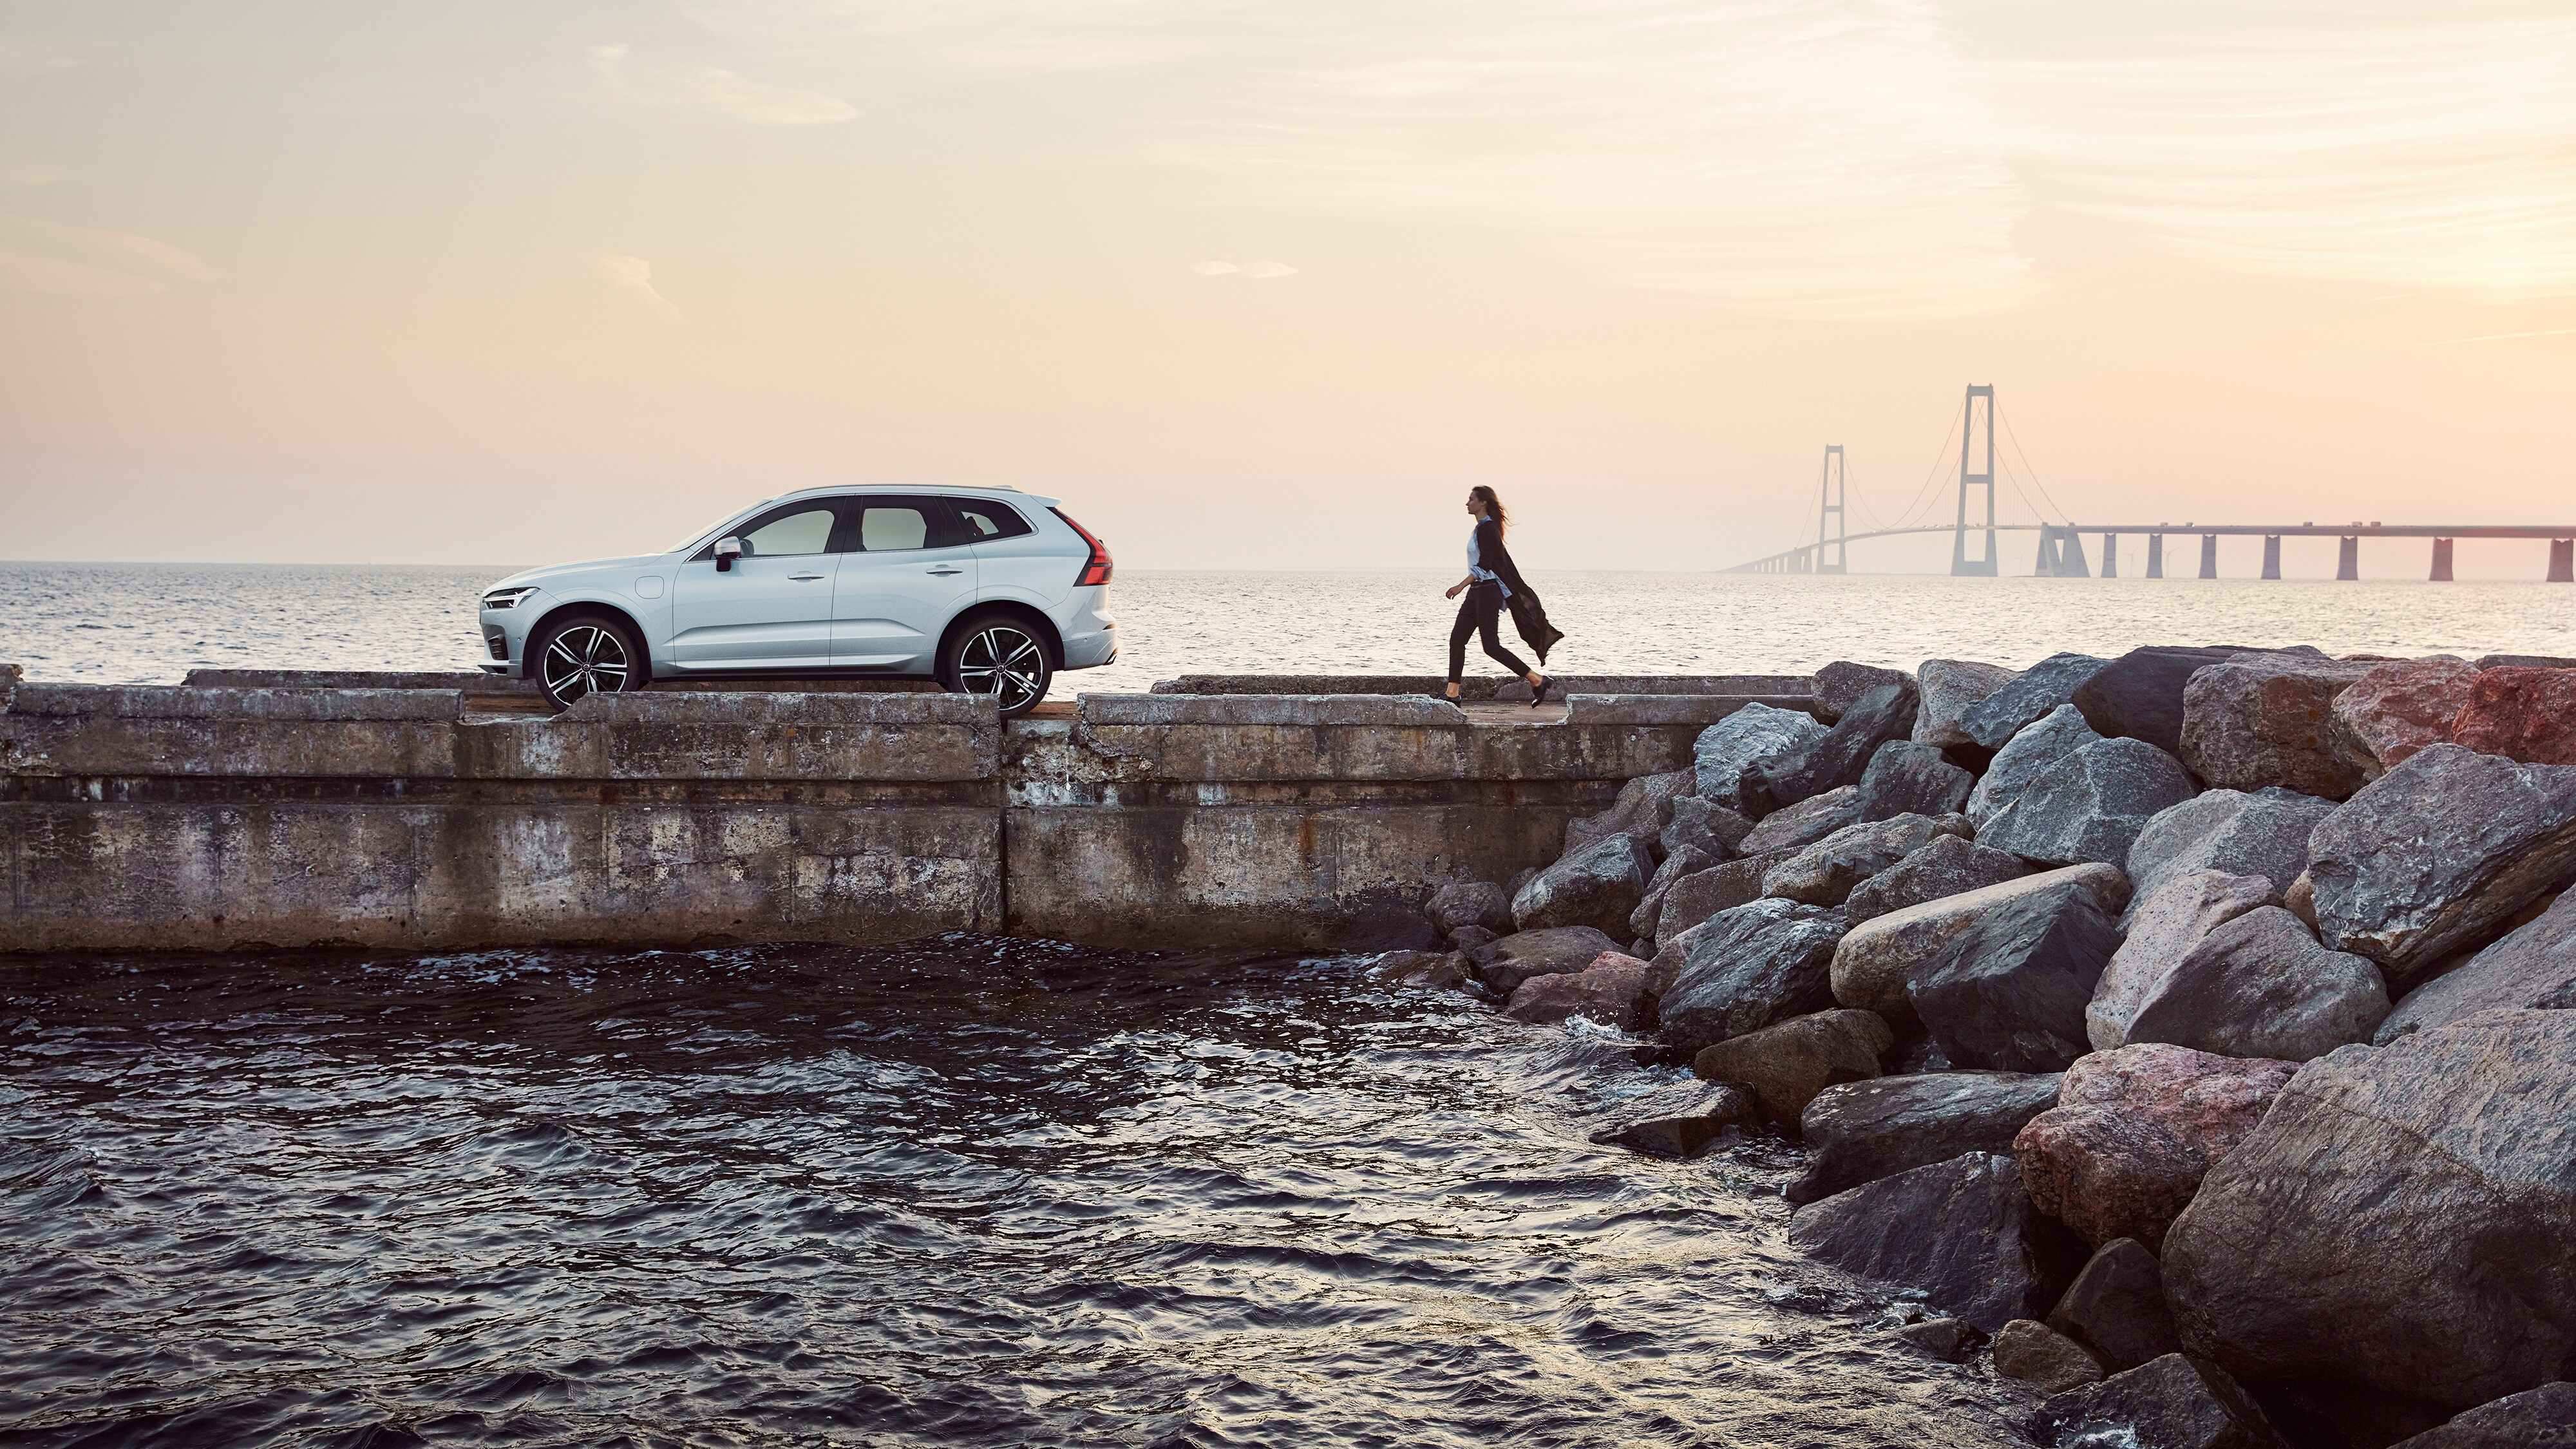 Side view of the new Volvo XC60 R-Design parked on a jetty with a woman approaching it